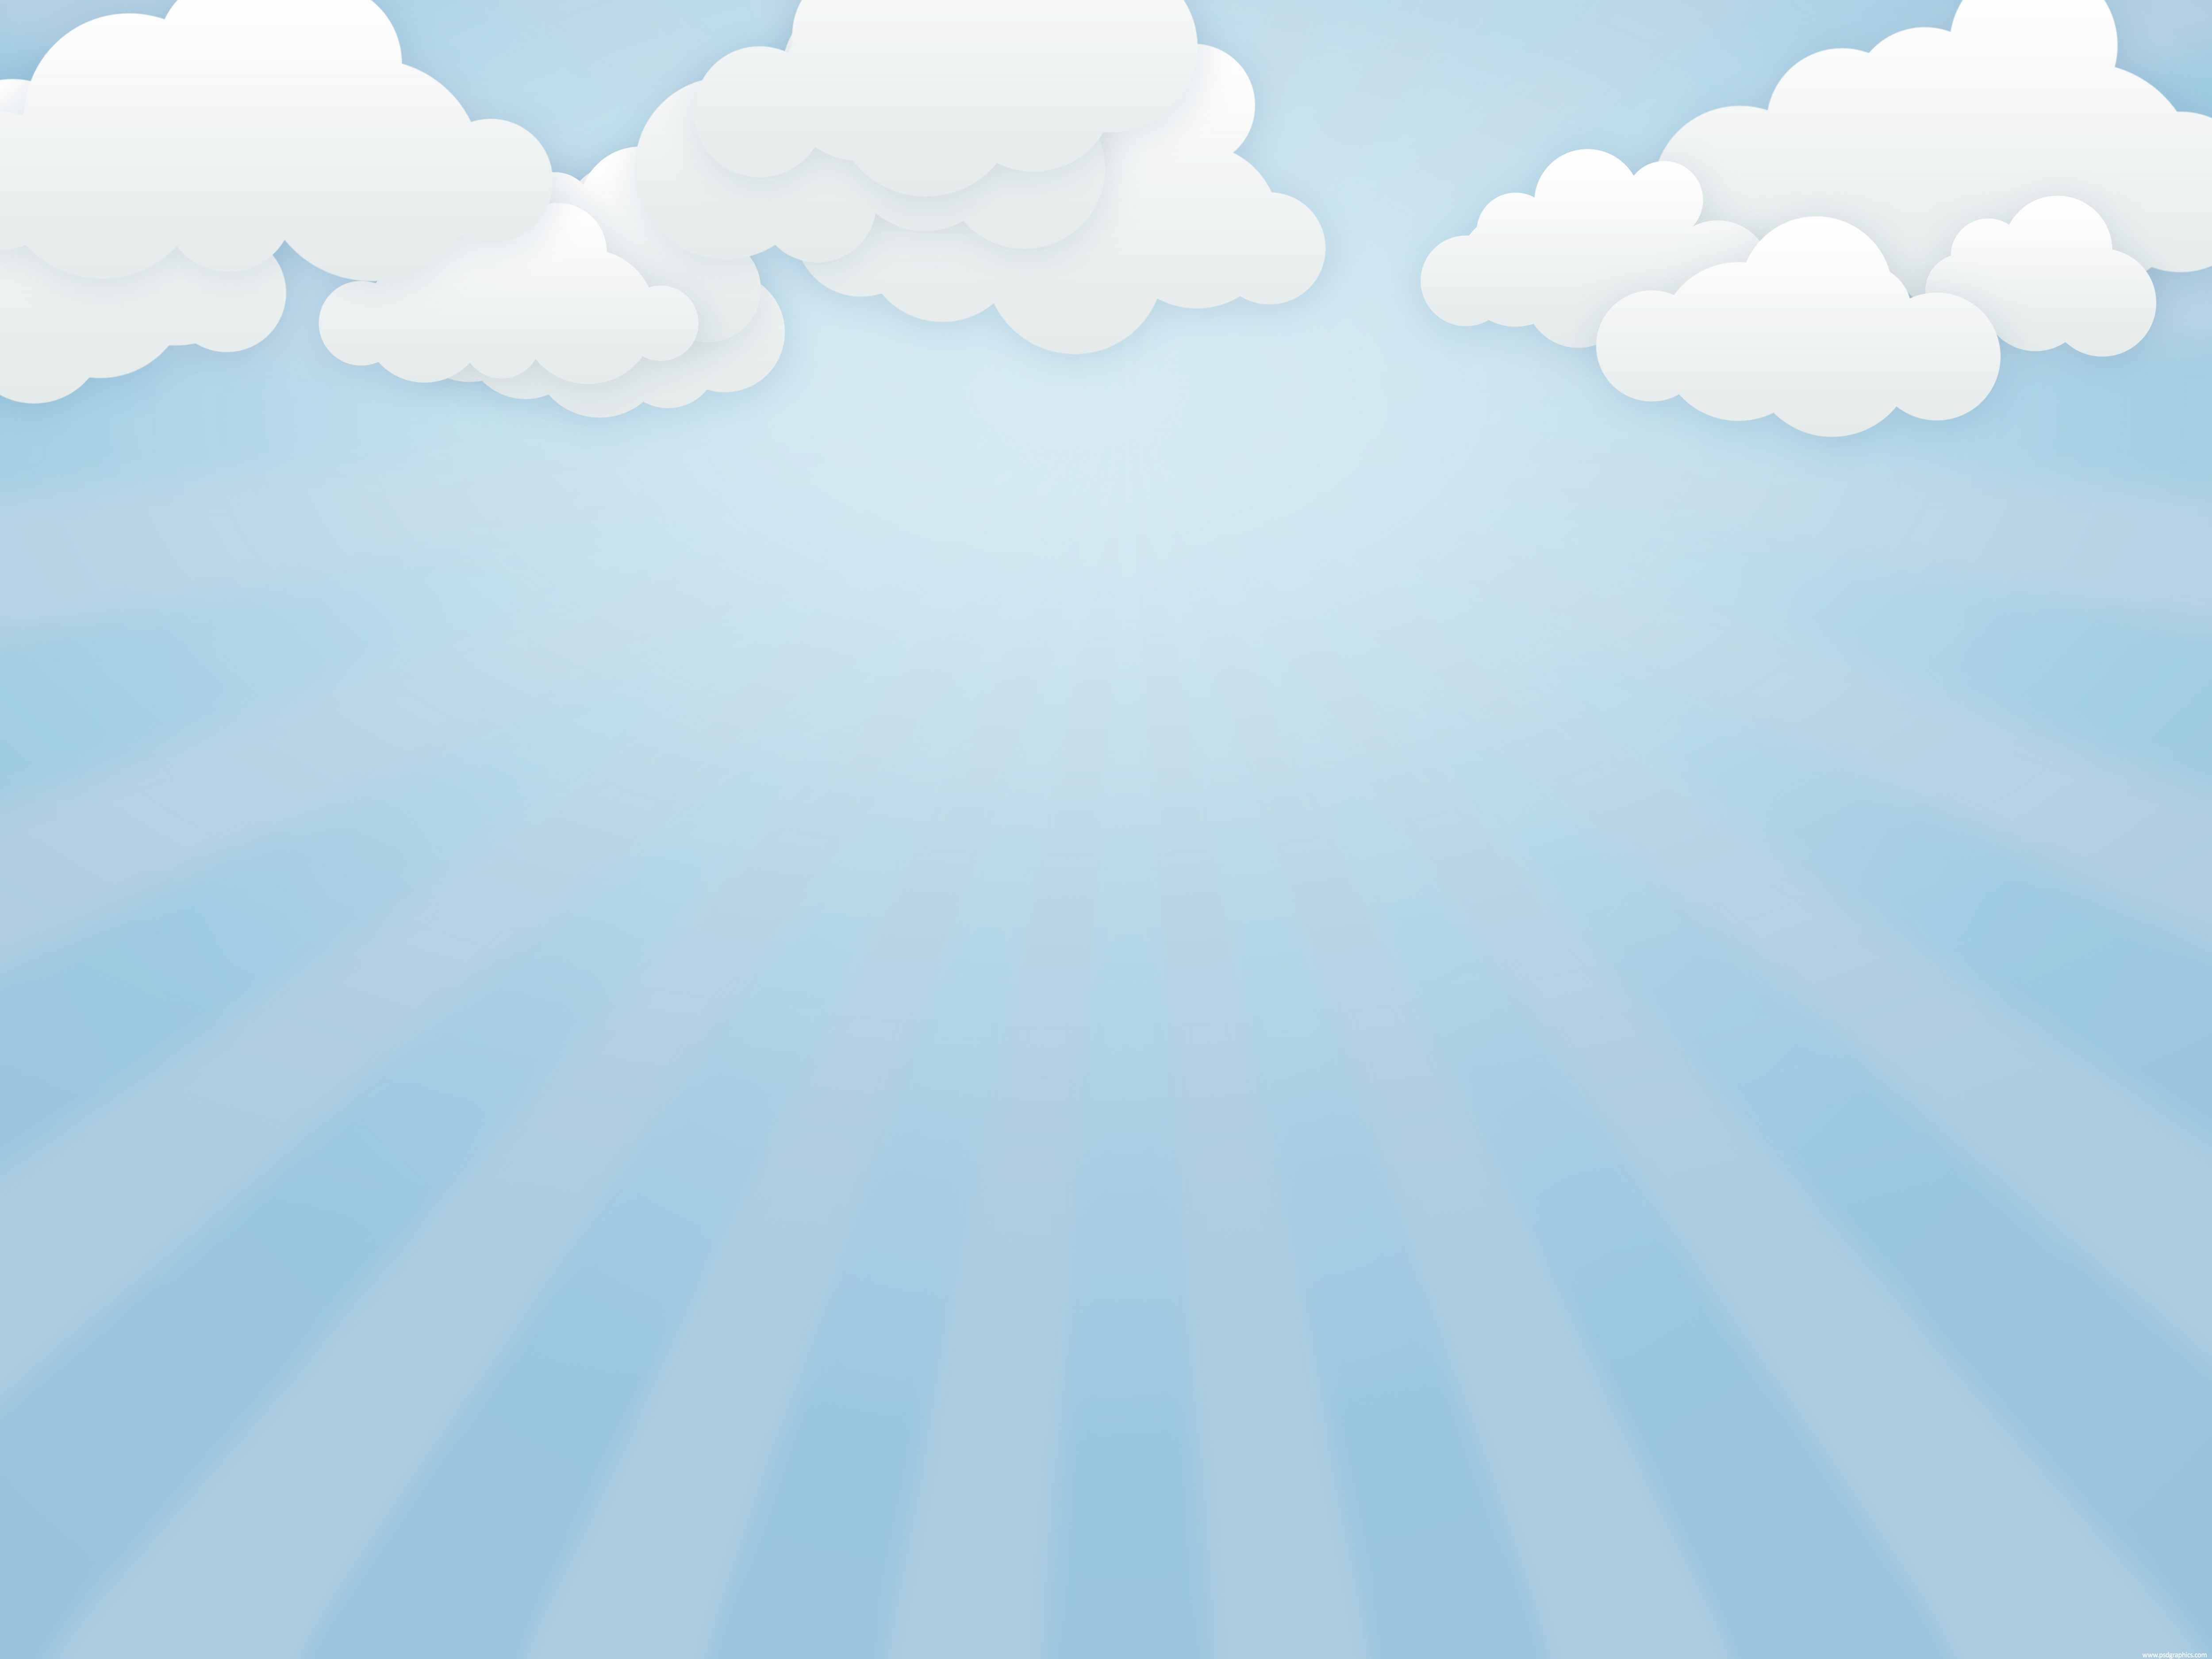 Sky clipart #5, Download drawings